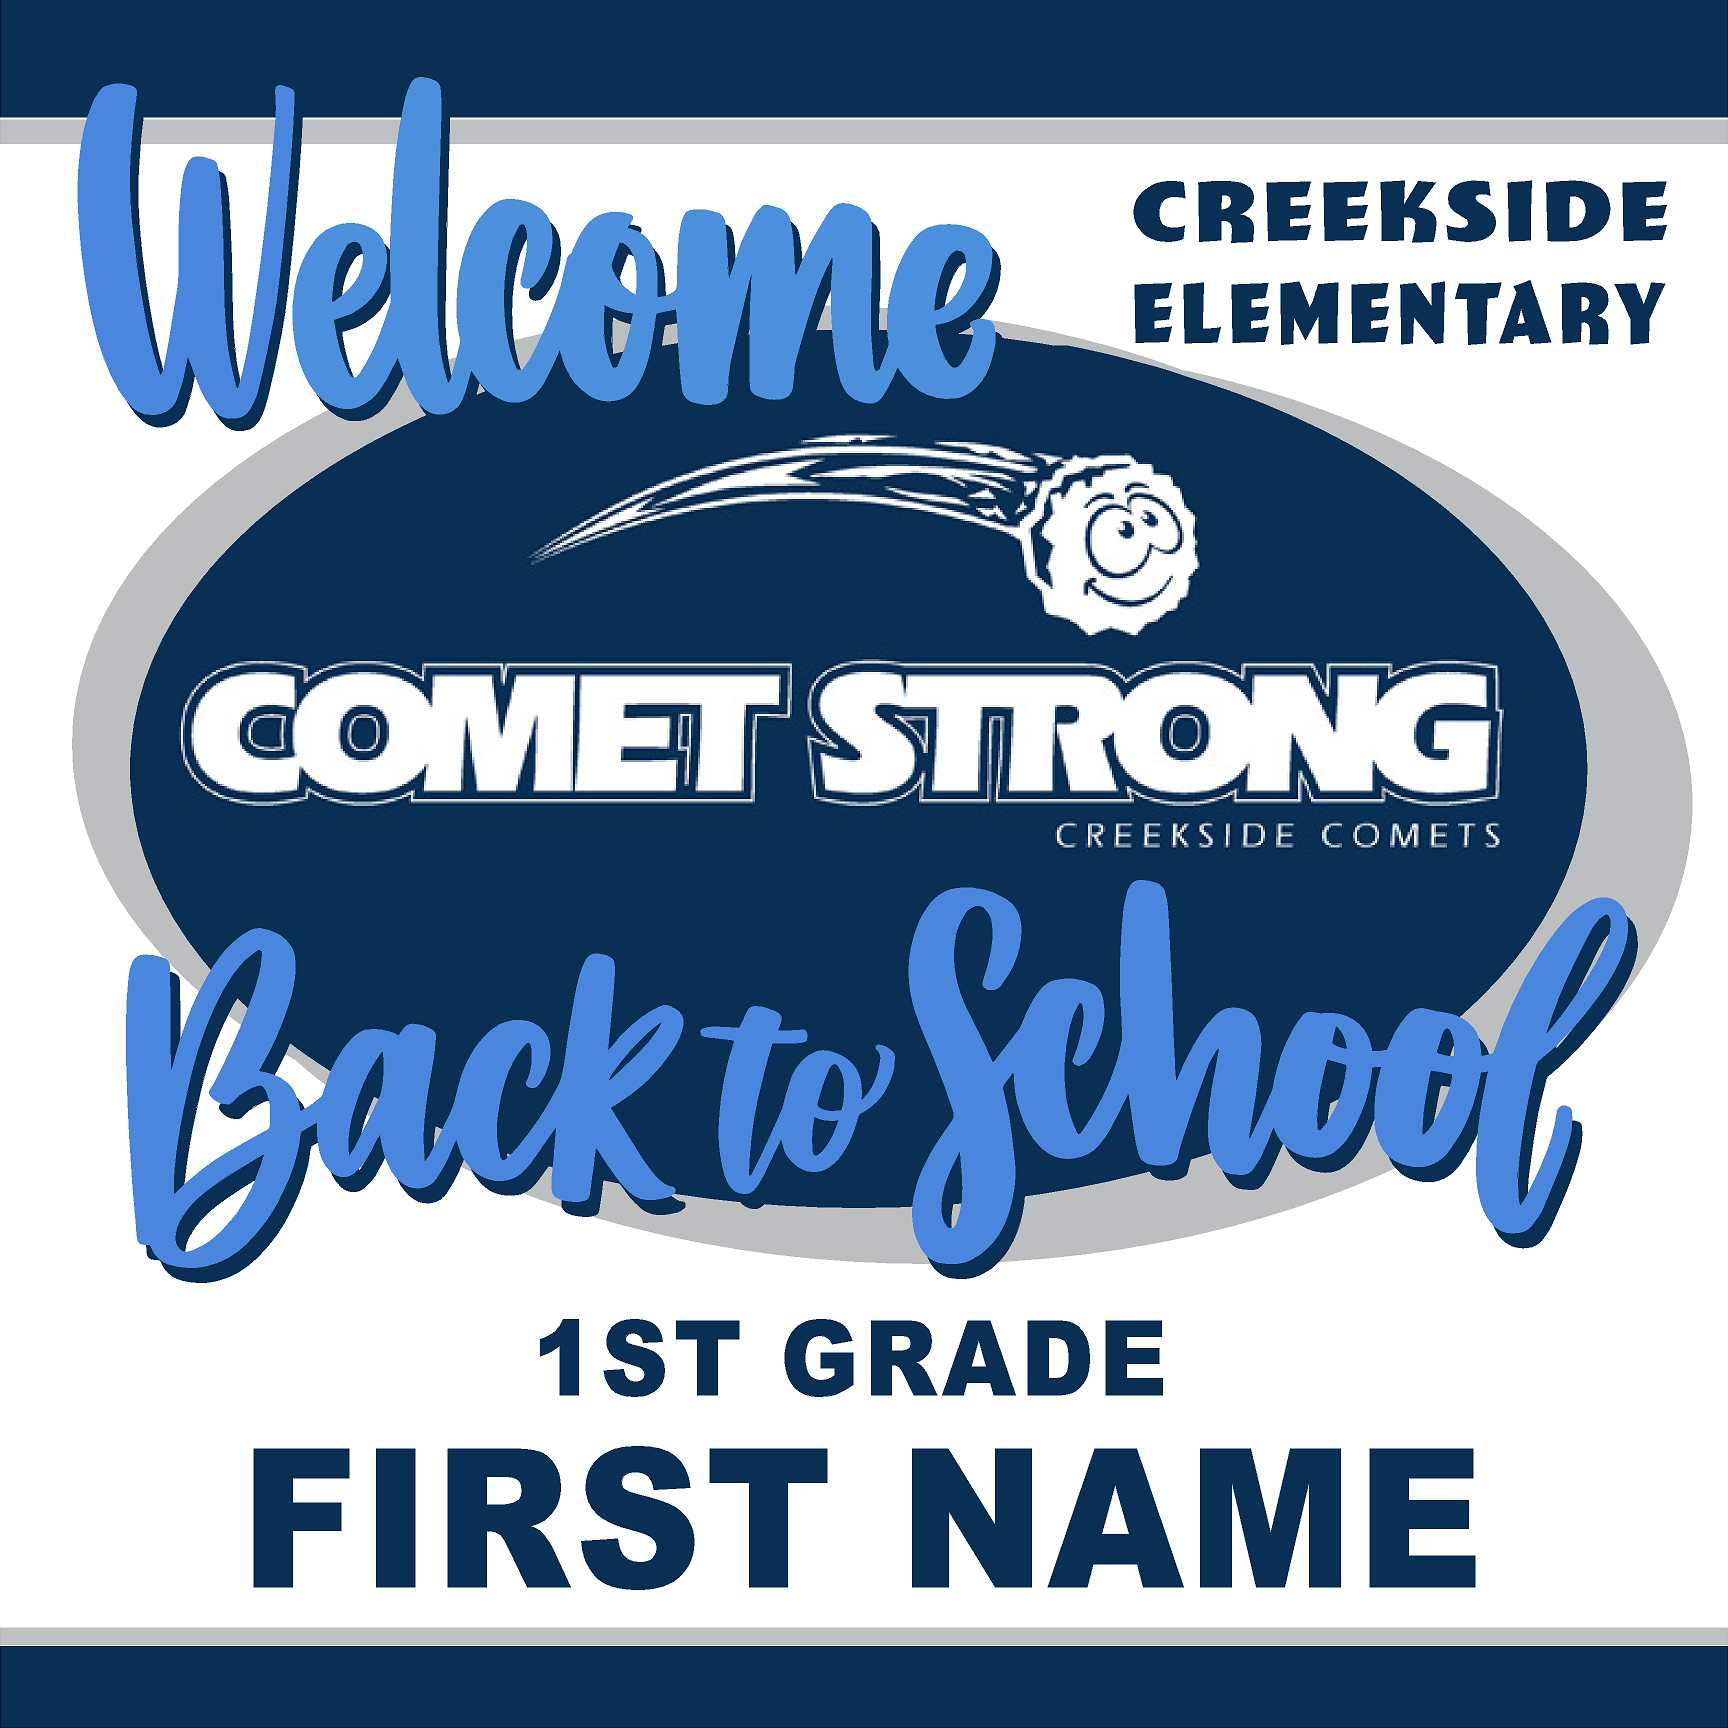 Welcome back to school!  Creekside Elementary 1st Grade 24x24 Yard Sign (includes installation in your yard)